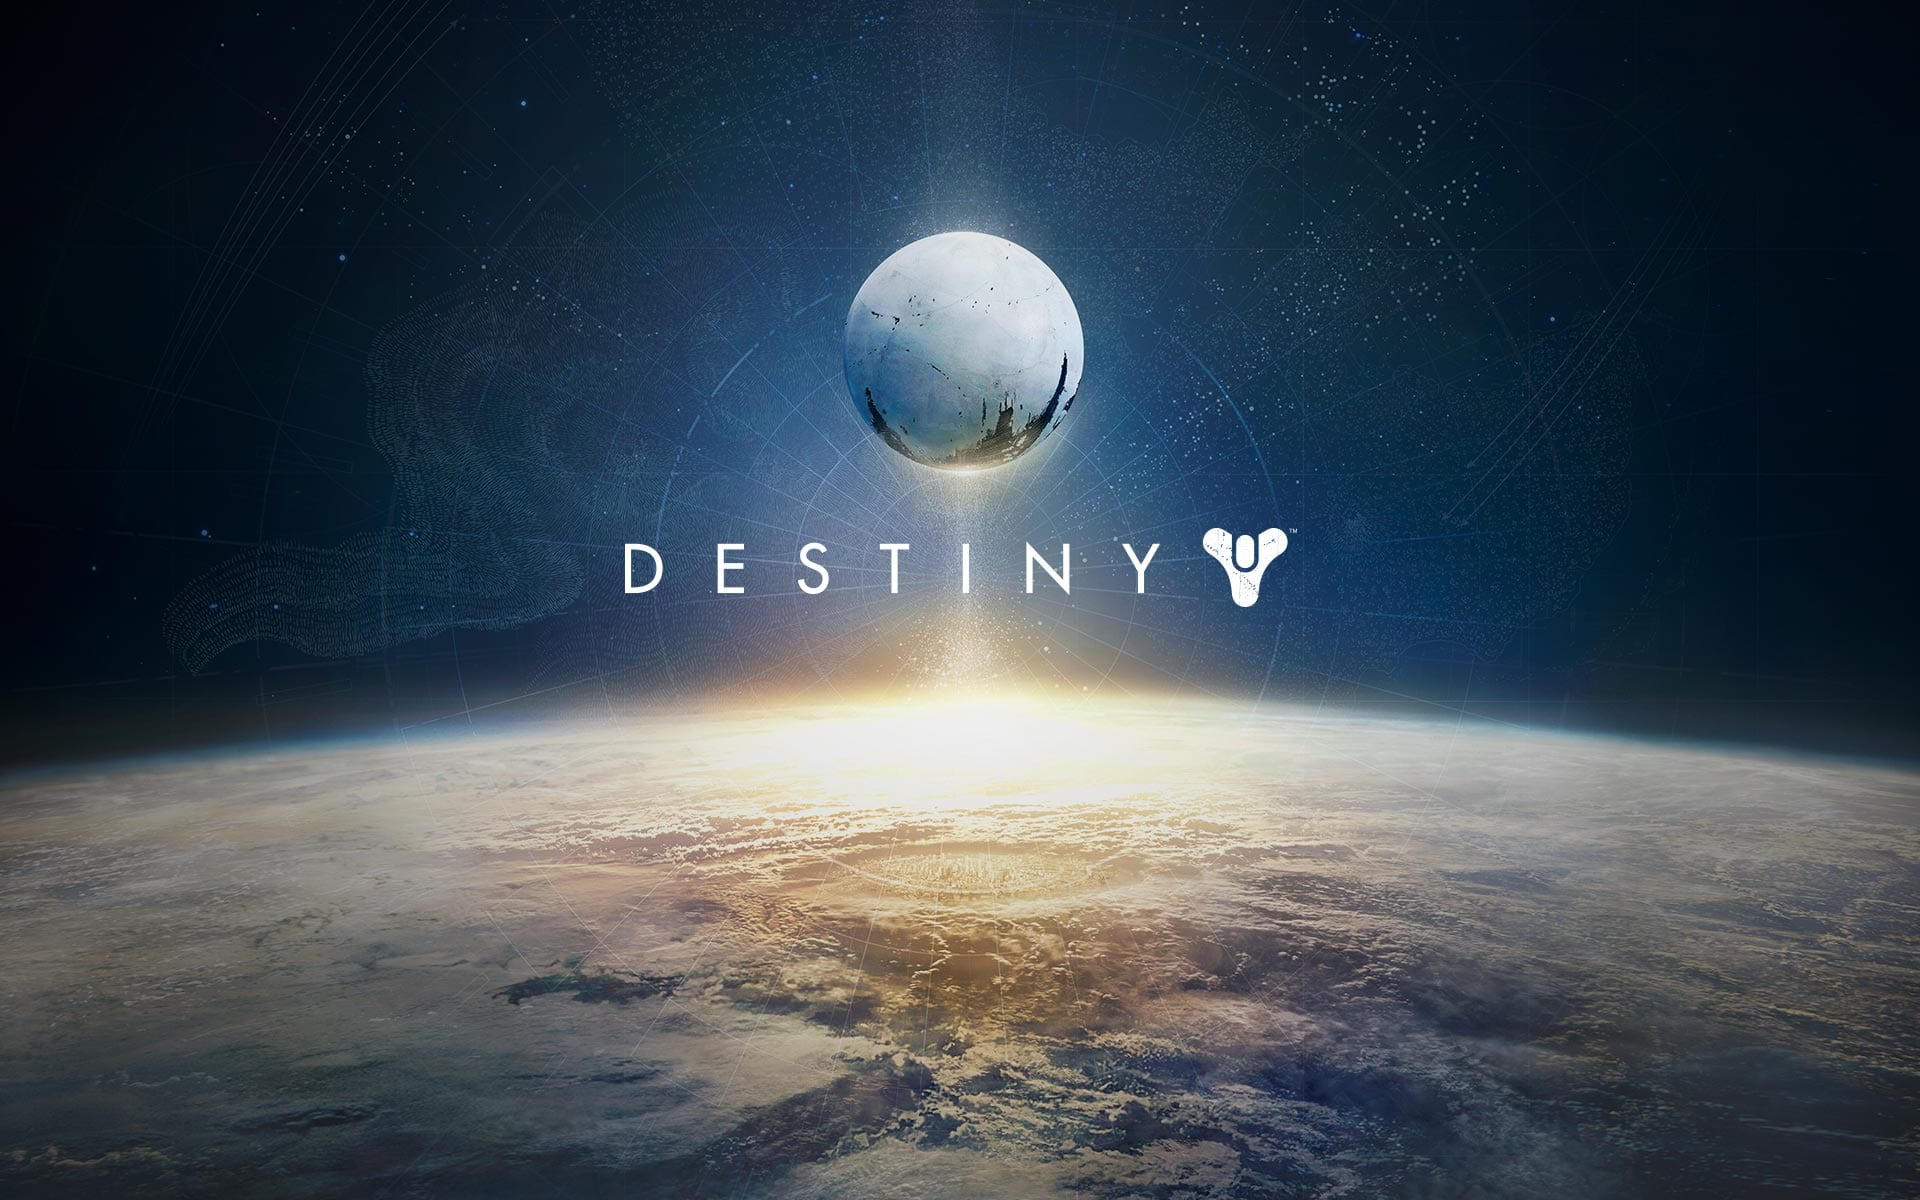 The Facts and Details of what we know about Destiny so far